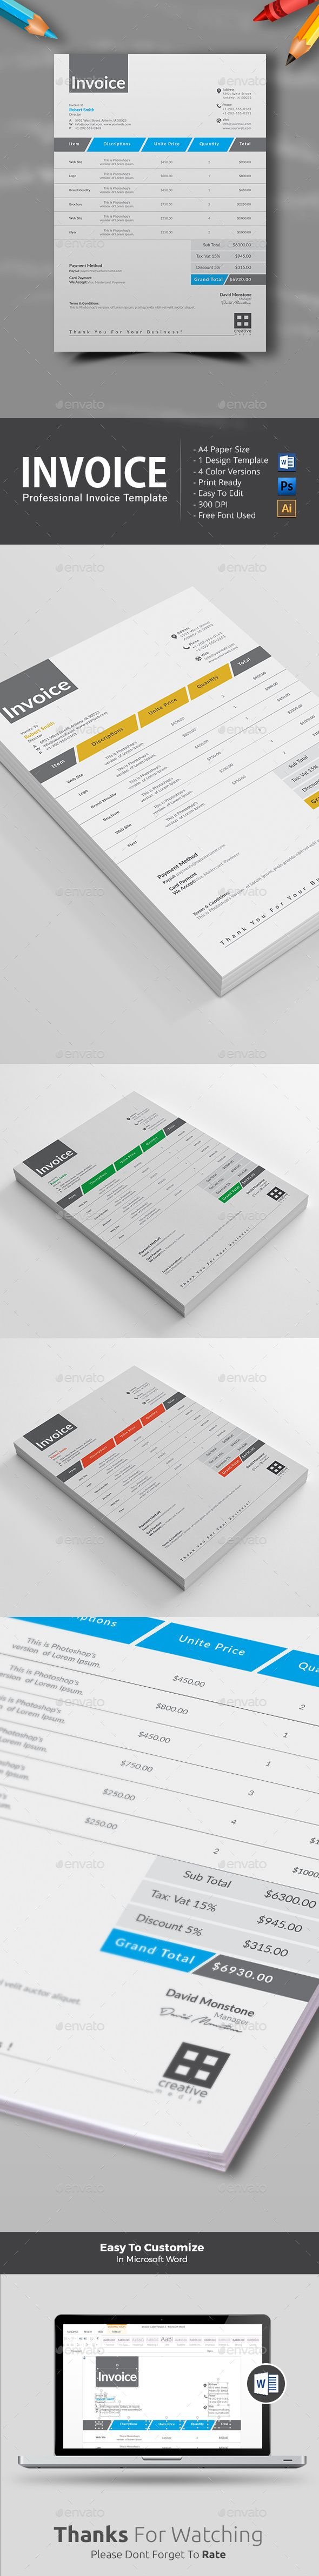 Invoice Template Design | Word Invoice Template | Instant Download https://graphicriver.net/item/invoice/17221087?ref=themedevisers